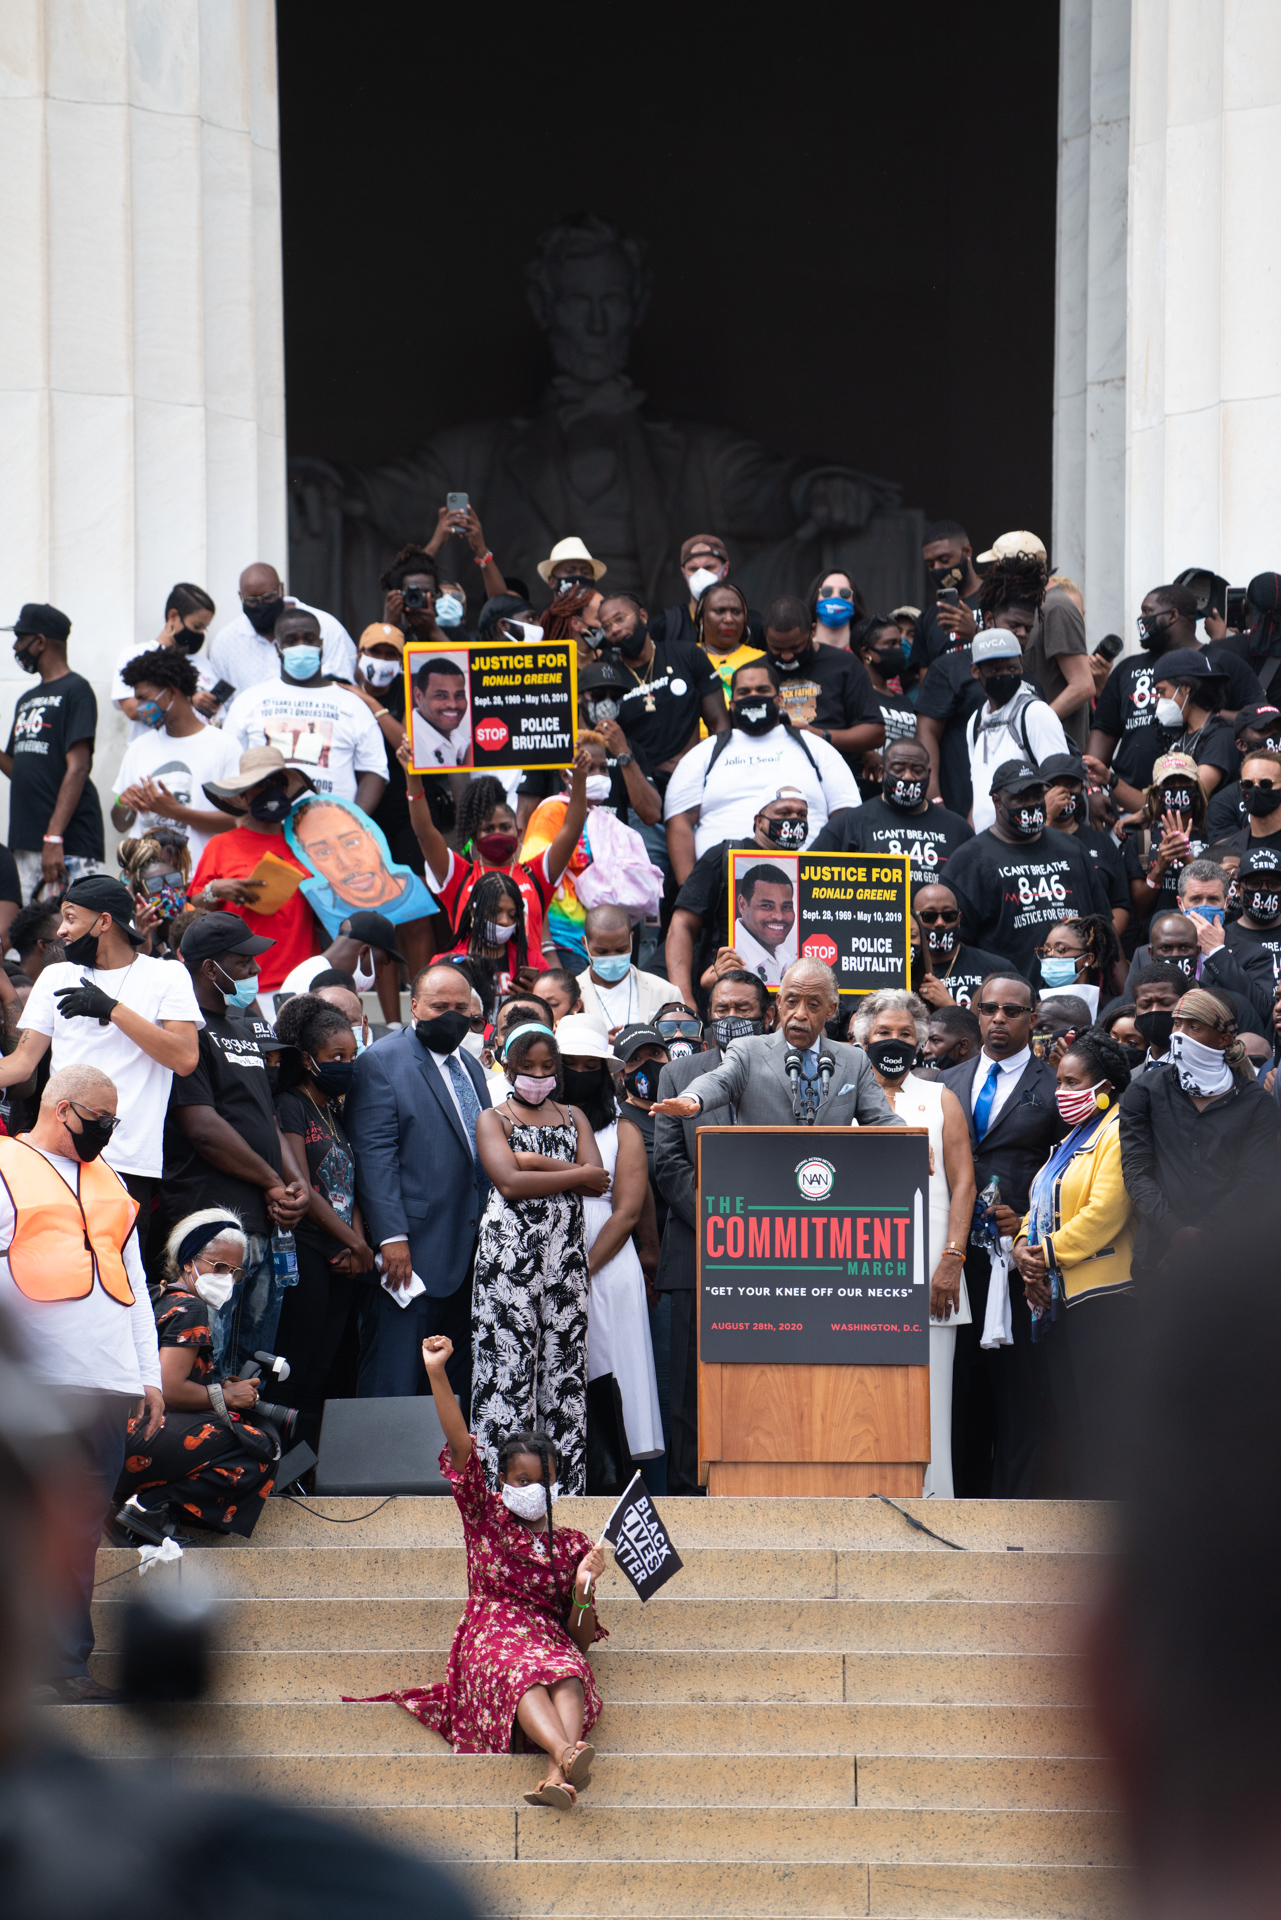 ommitment march on washington, al sharpton walk, national action network, march, social justice, al sharpton,national mall,march, protest, rally, black lives matter, blm,